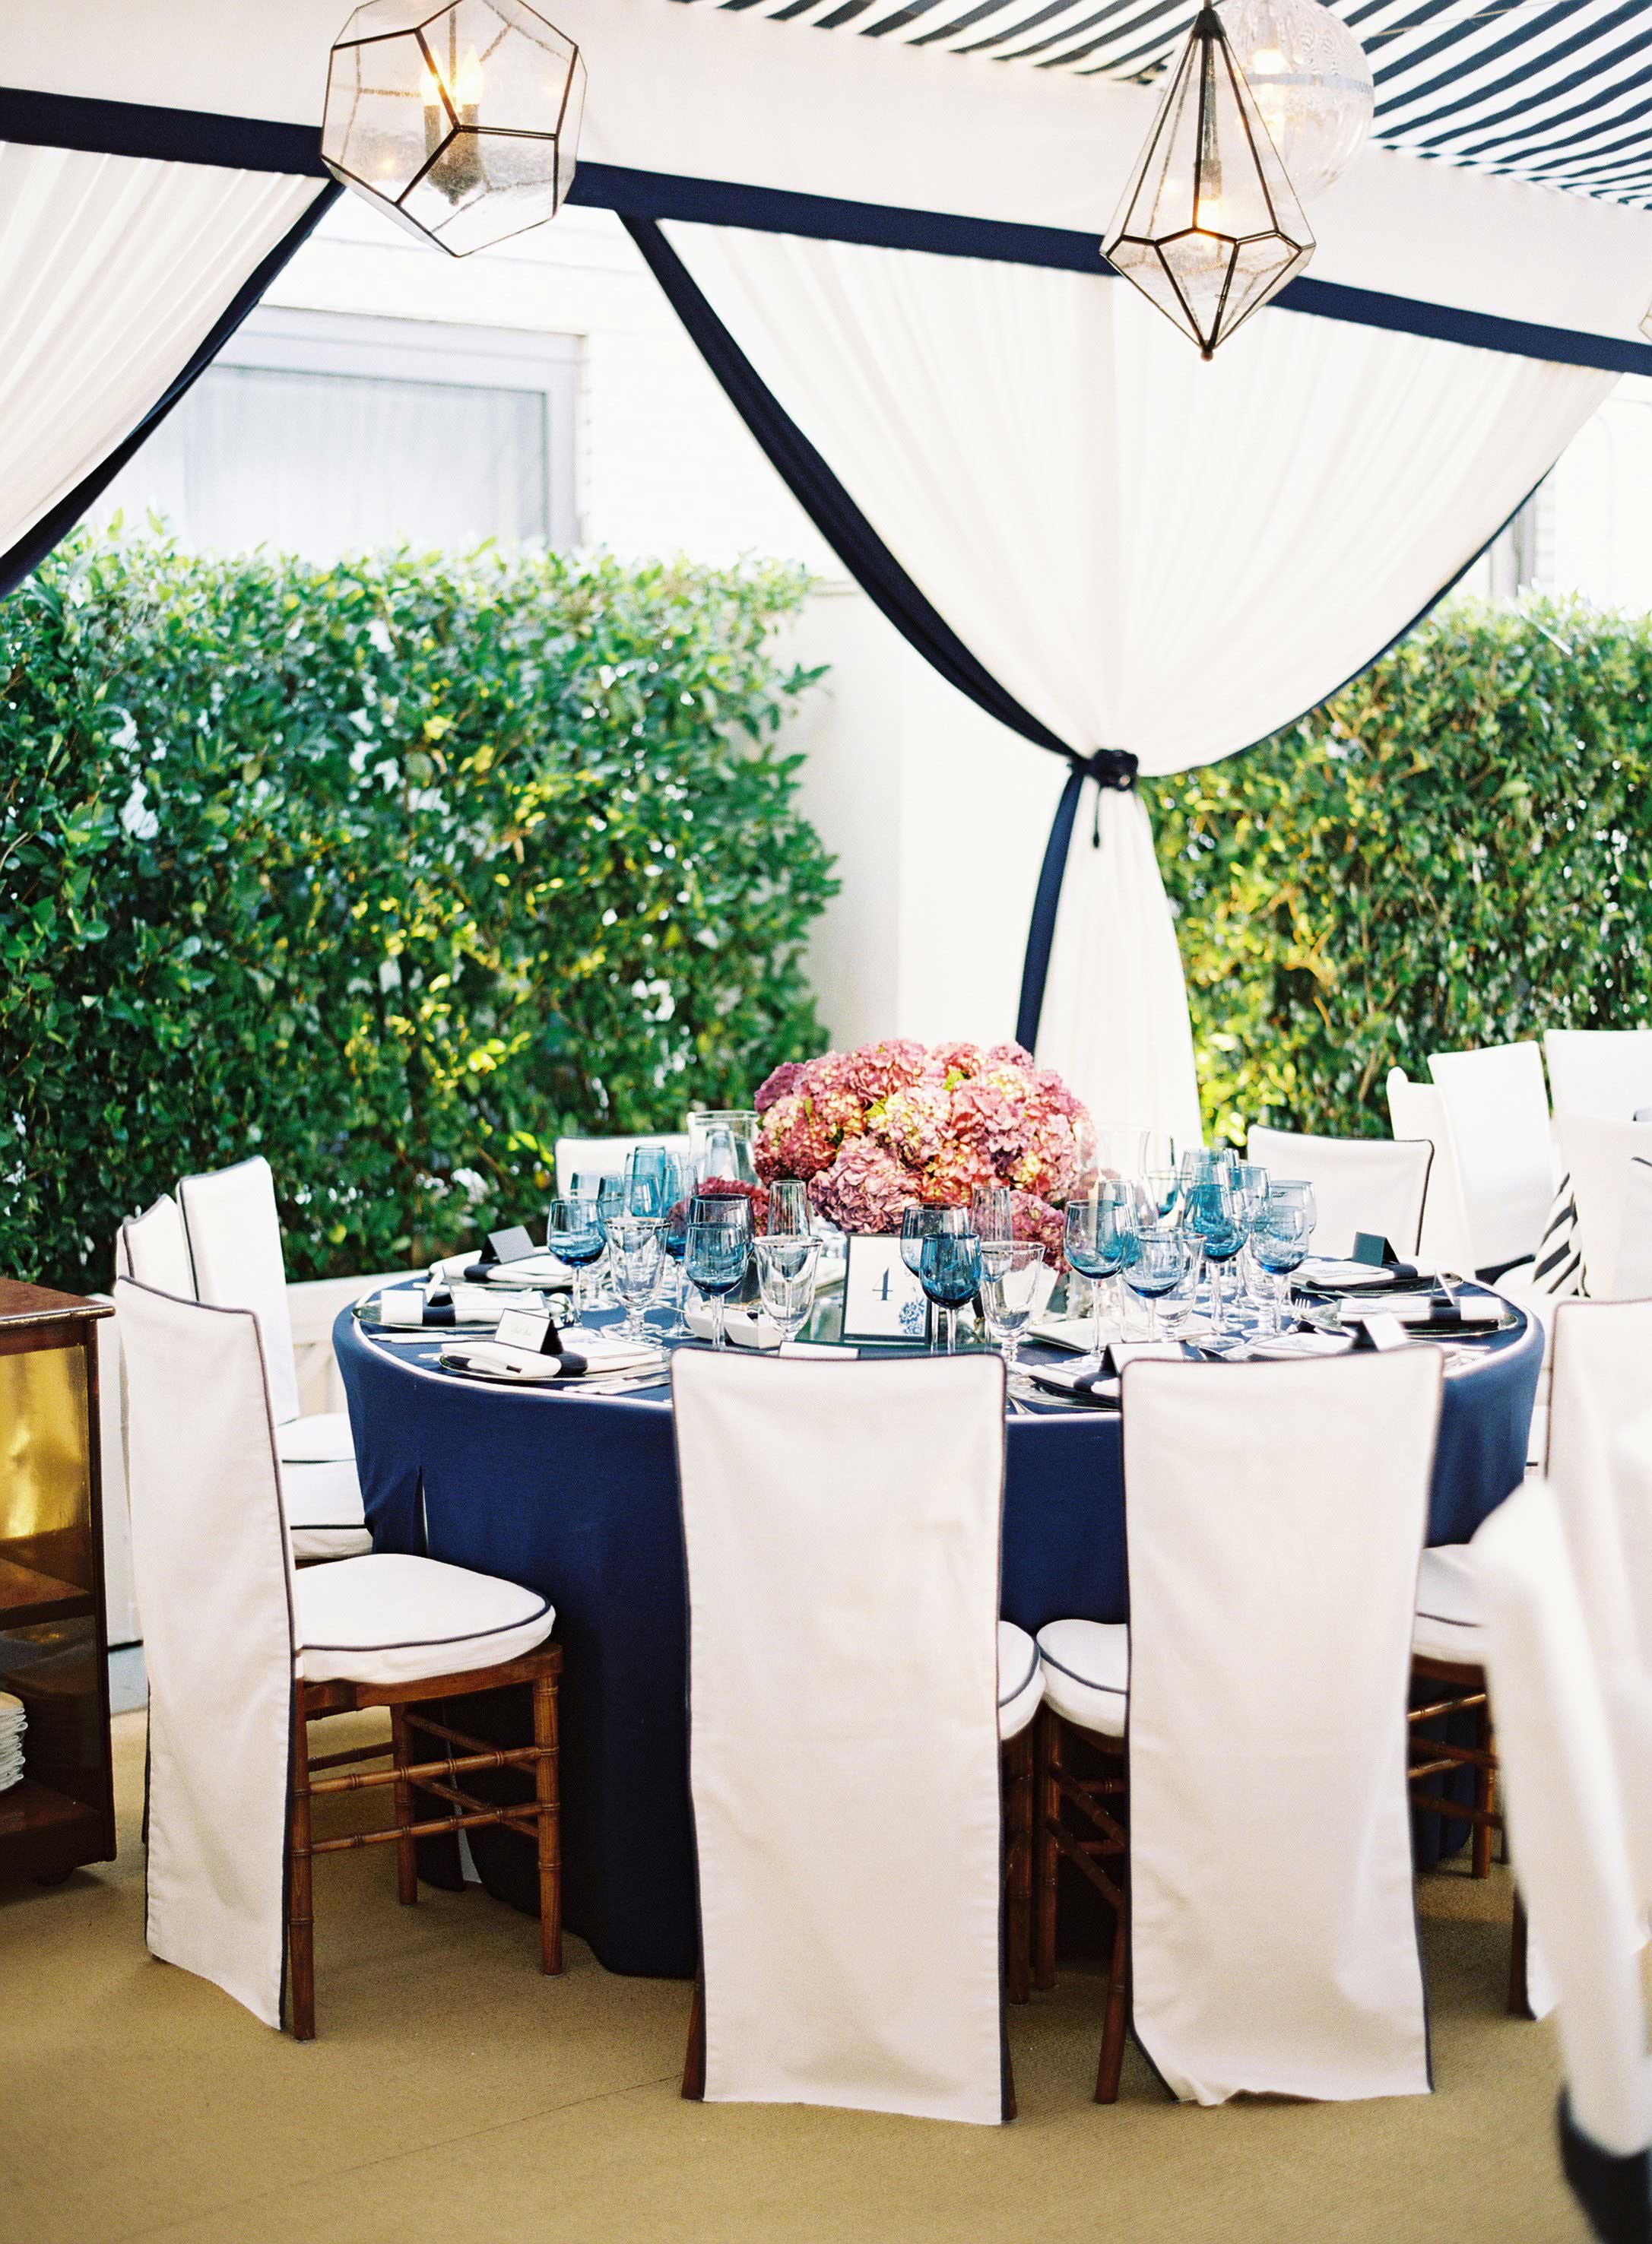 Hedge blocking building at rehearsal dinner